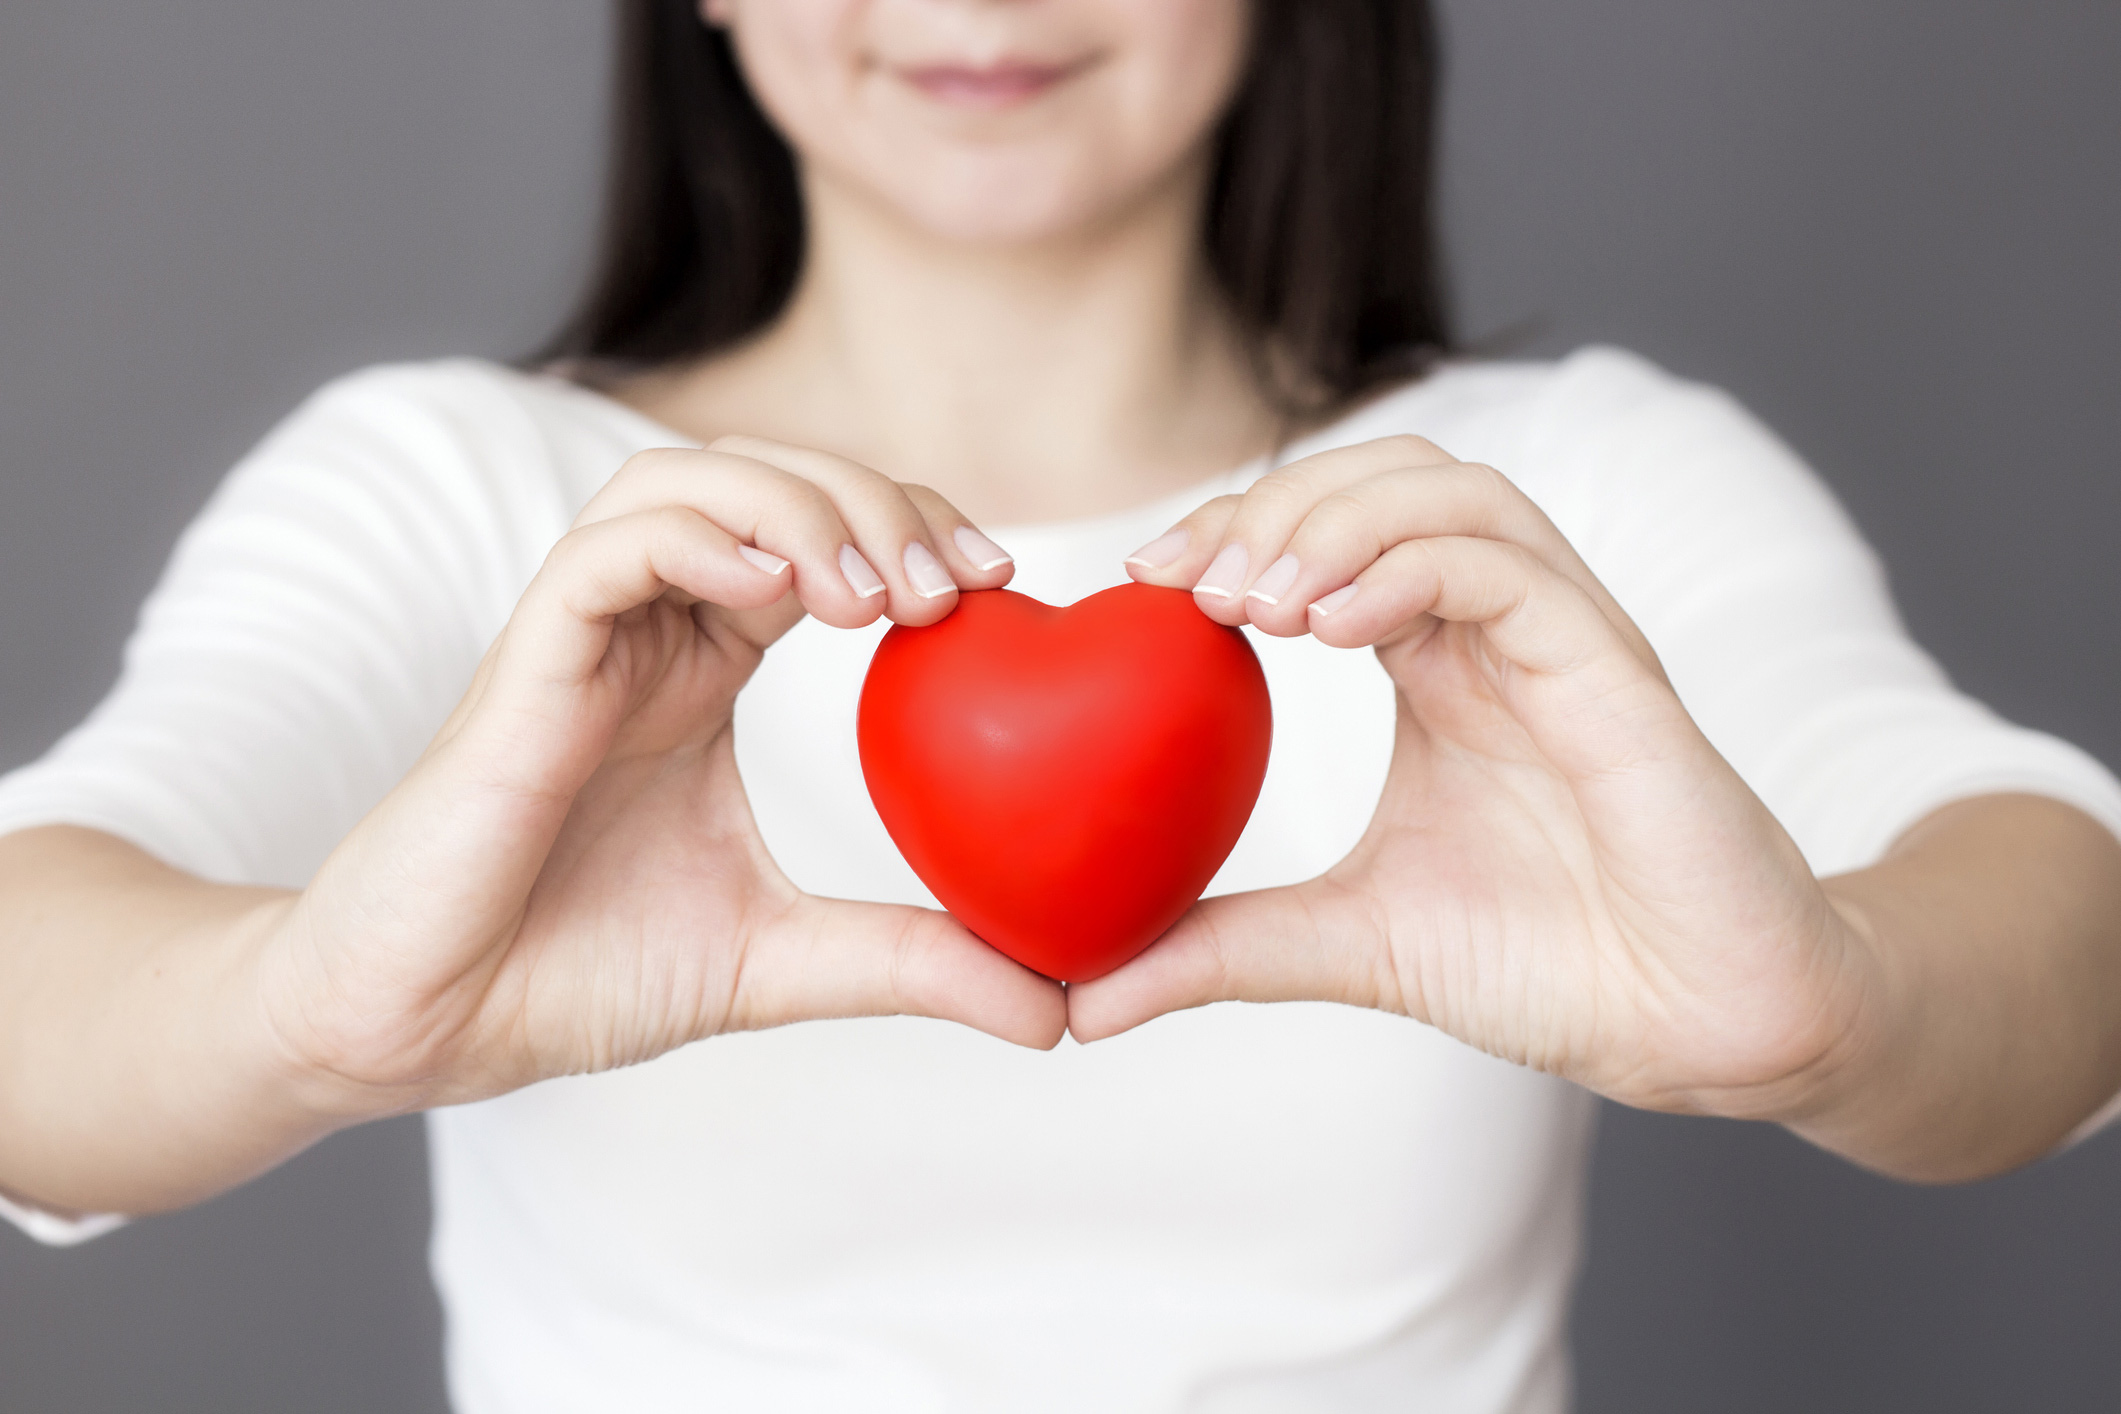 Heart healthy foods: How to protect yourself from heart disease